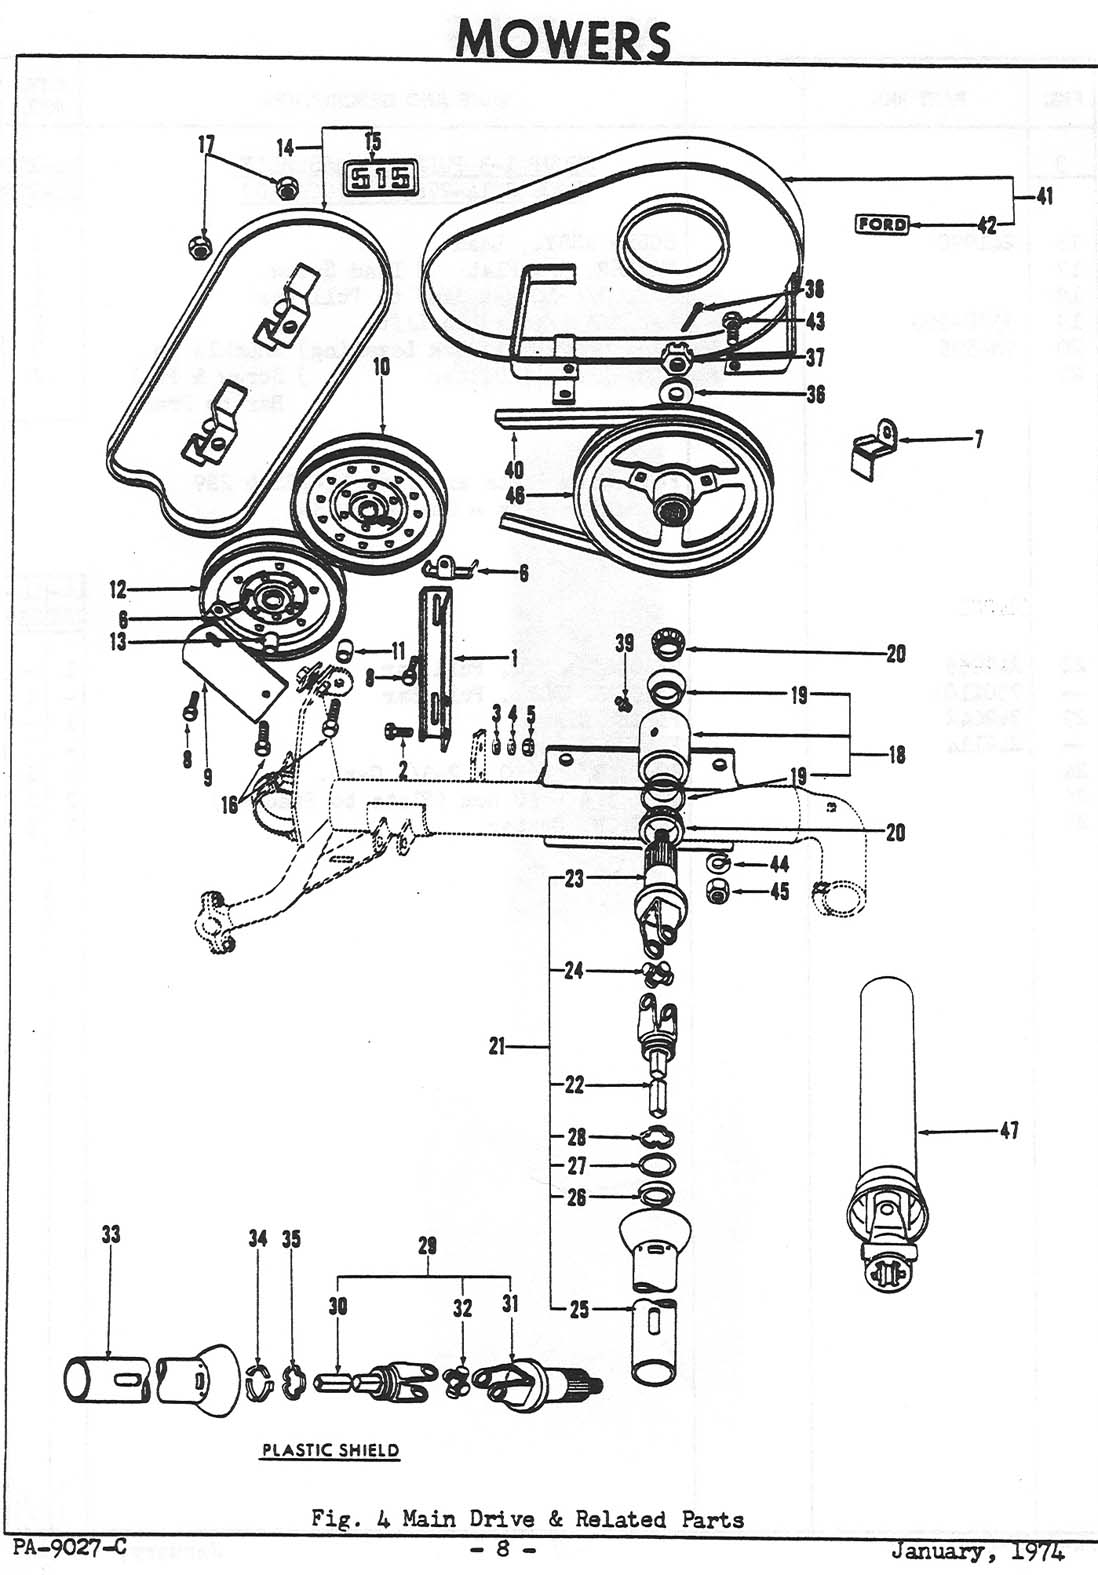 Ford 1710 Diagram : Ford tractor parts diagram bing images